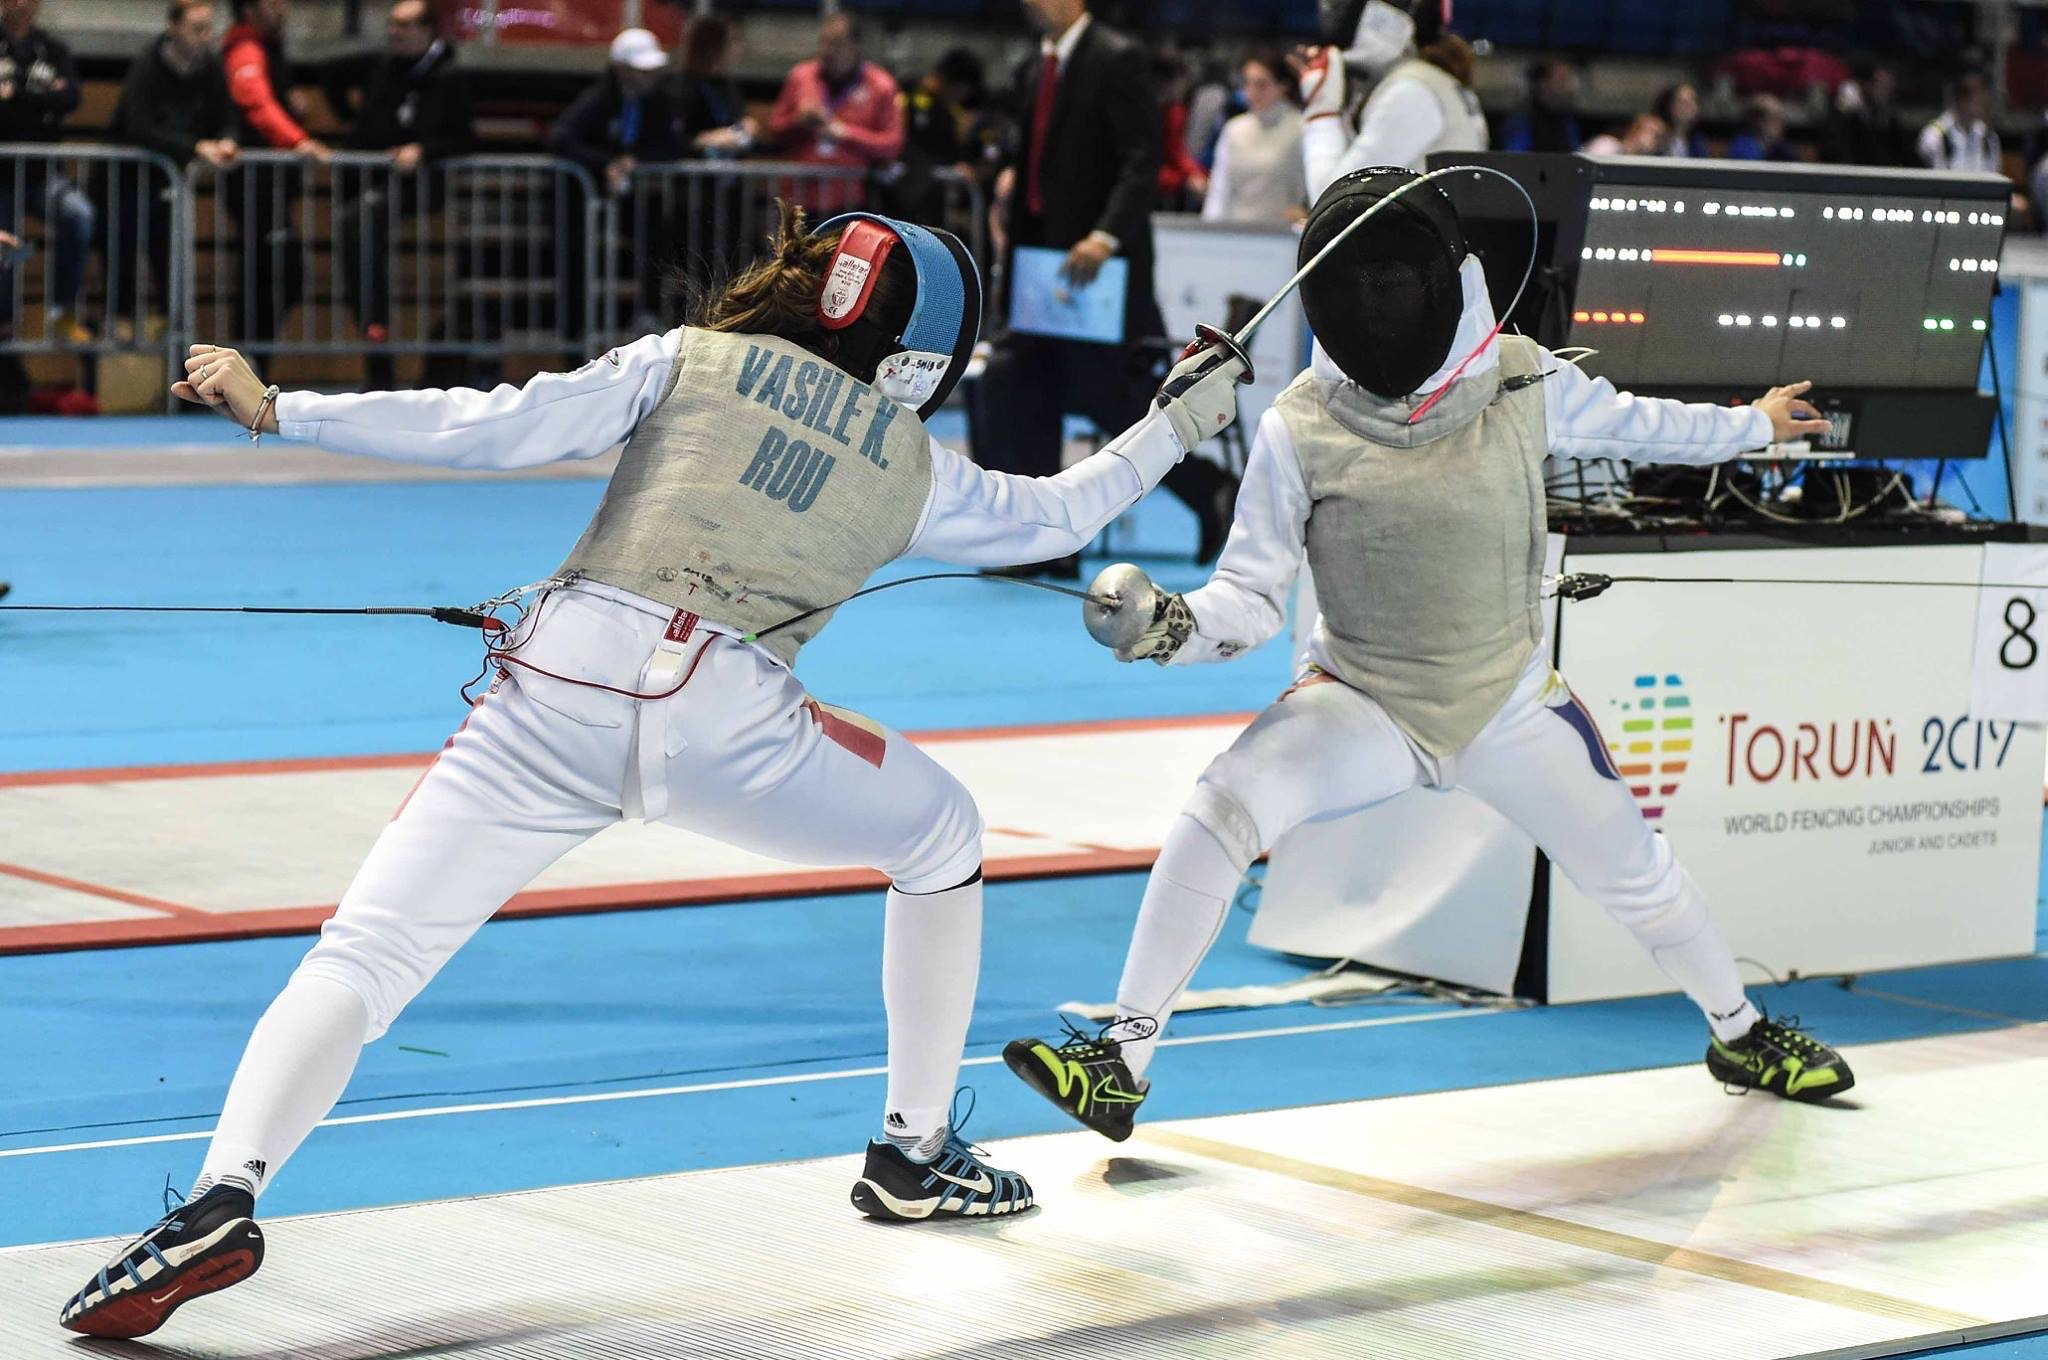 Fencing as a Metaphor for Life